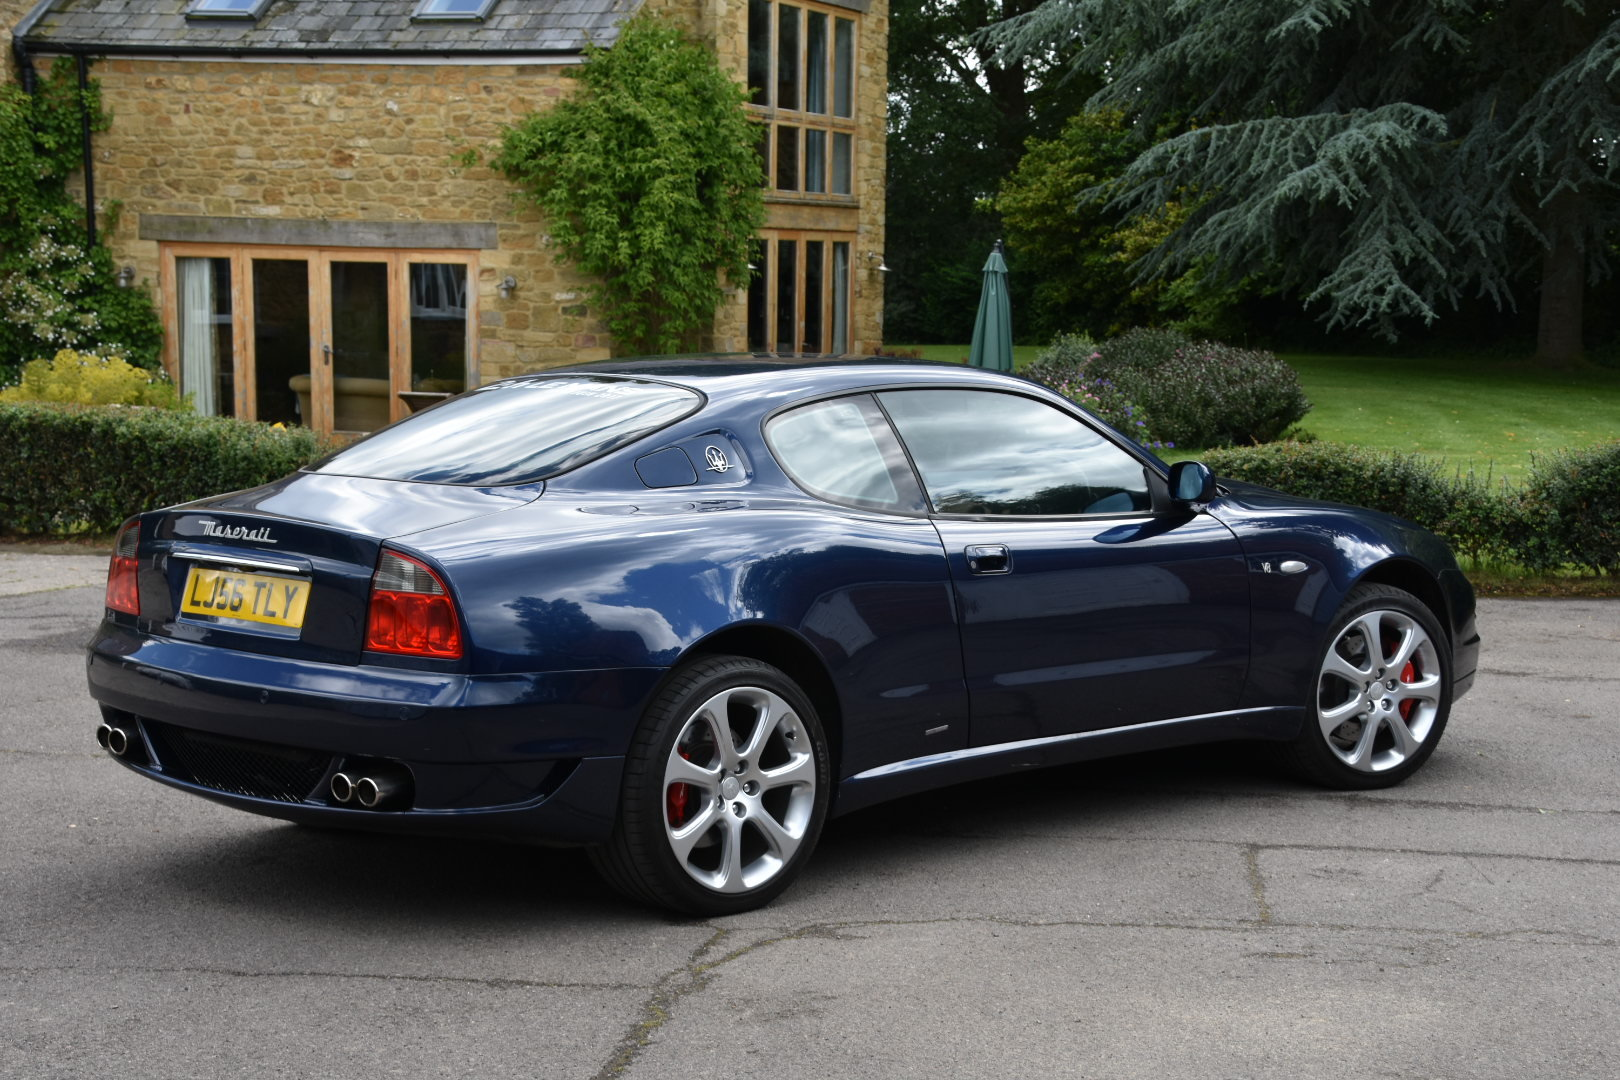 MASERATI 4200 GT, 2007 reg, New Clutch & FSH For Sale (picture 3 of 6)